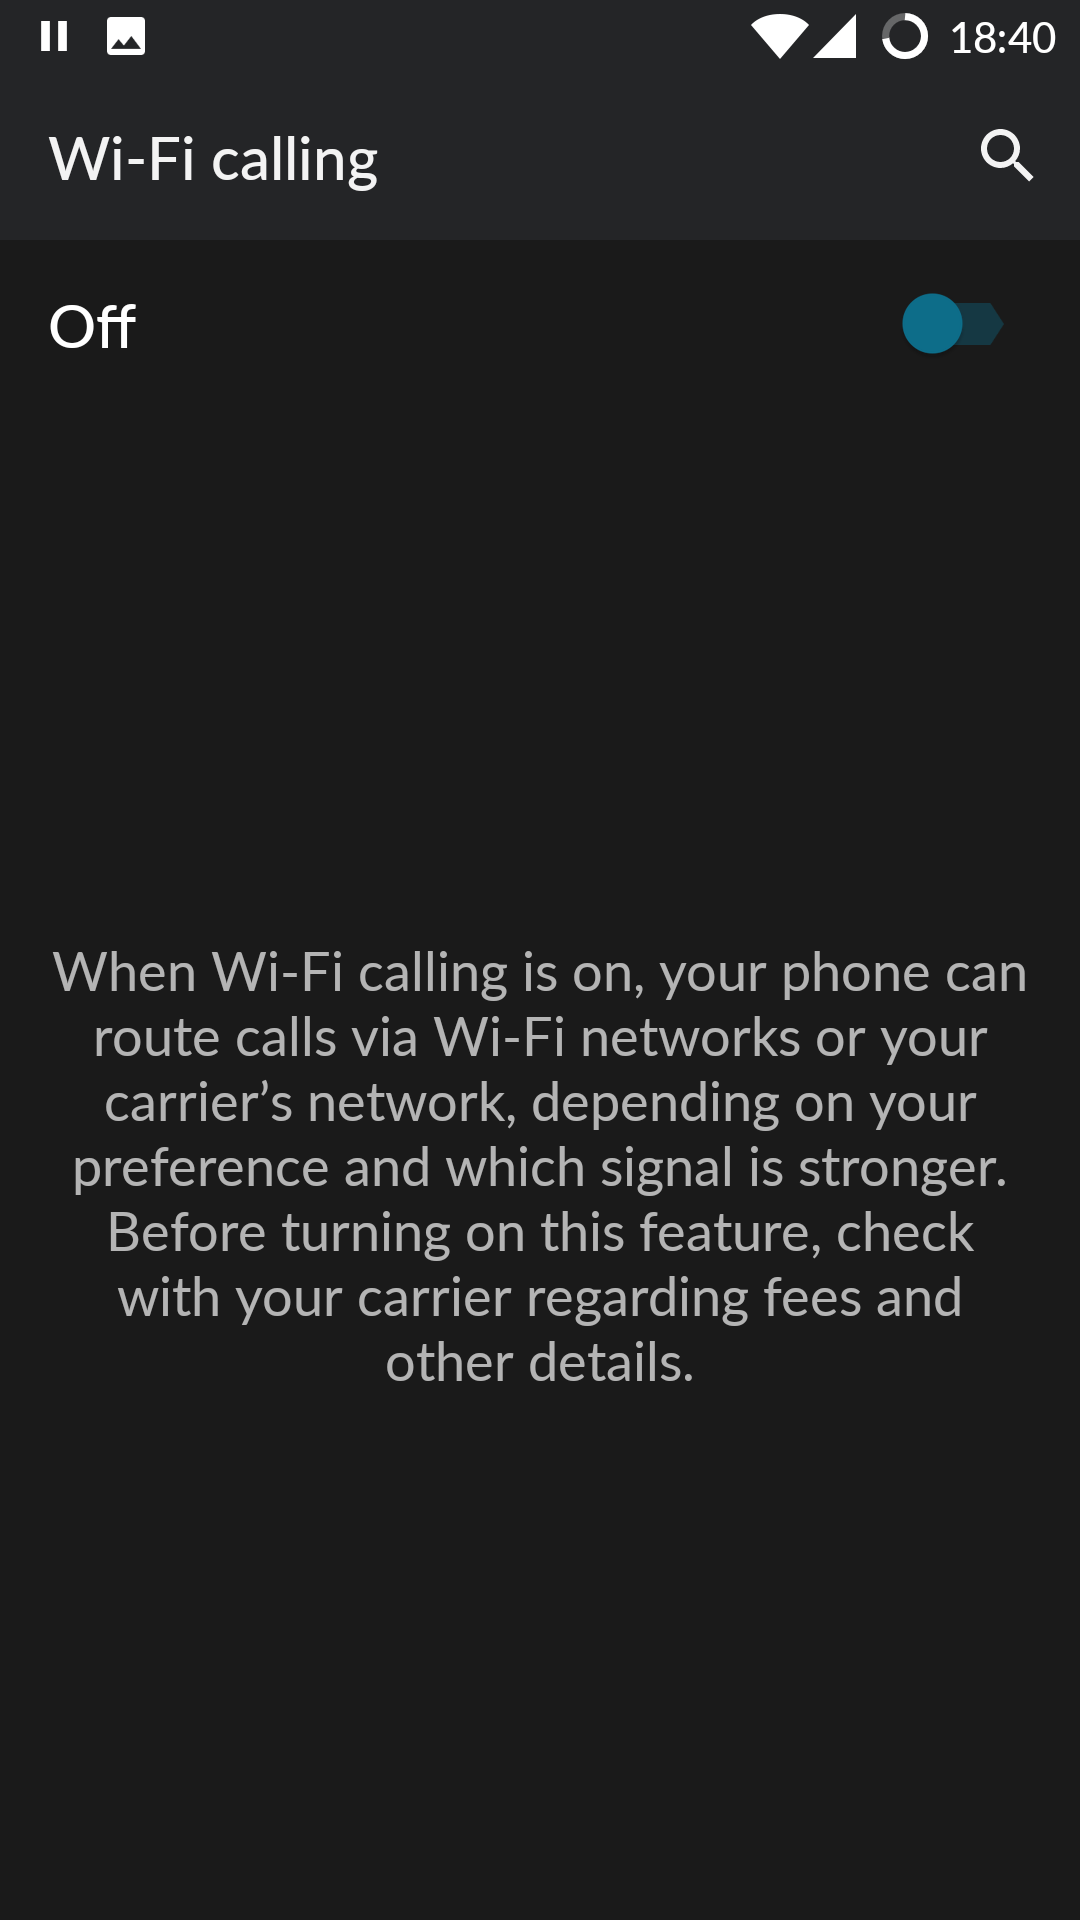 How to Enable Wi-Fi Calling - OnePlus Community